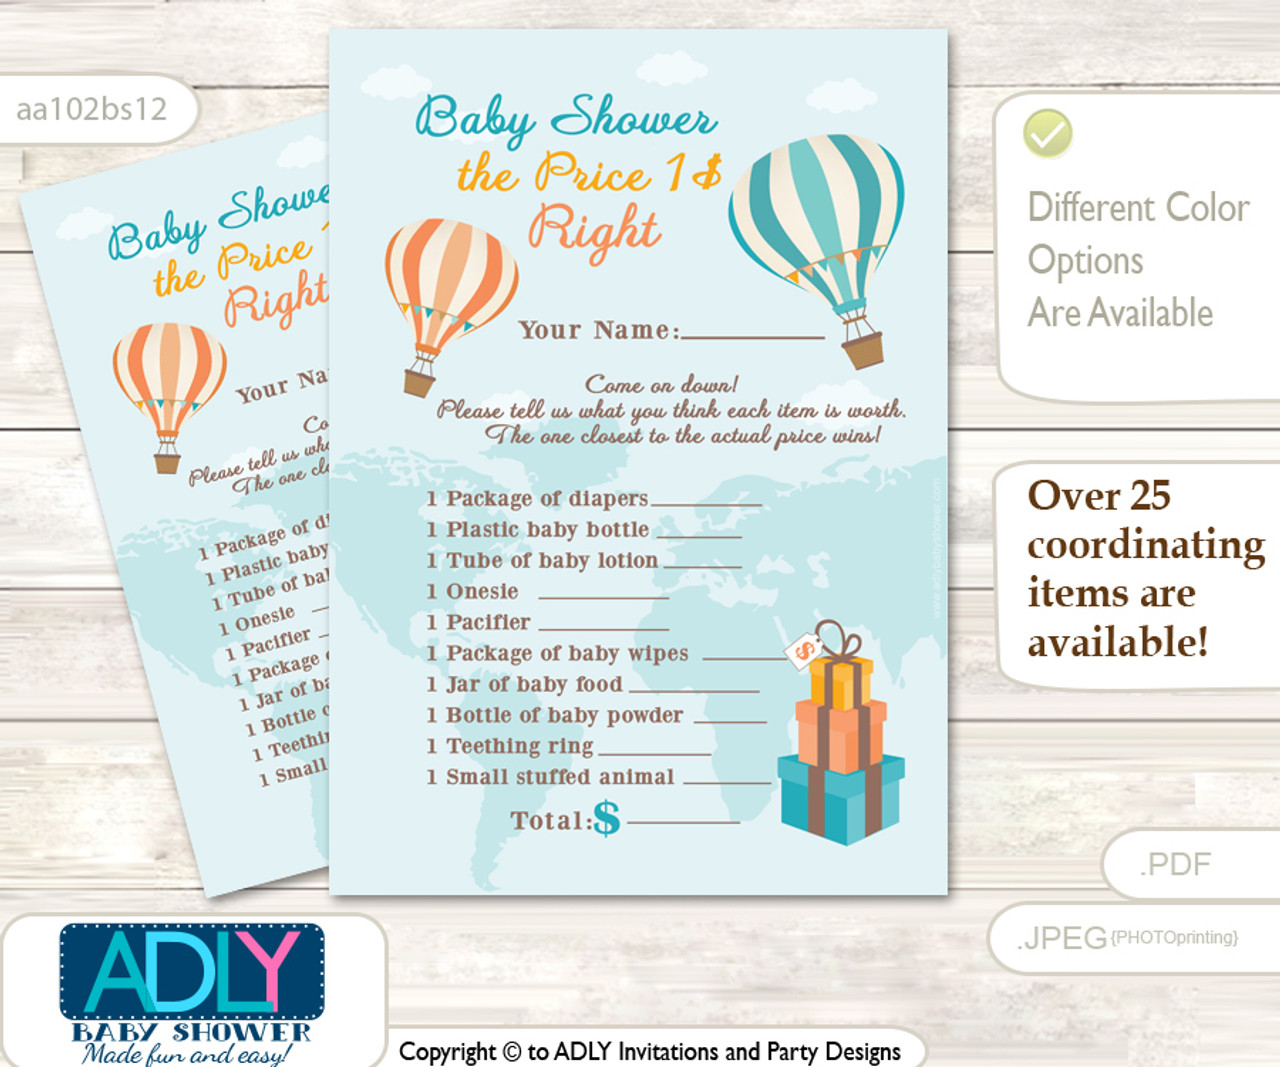 photo about Baby Shower Price is Right Printable known as Printable Impartial Air Balloon Cost is Specifically Sport Card for Youngster Air Balloon Shower, Coral Teal, Up and Absent